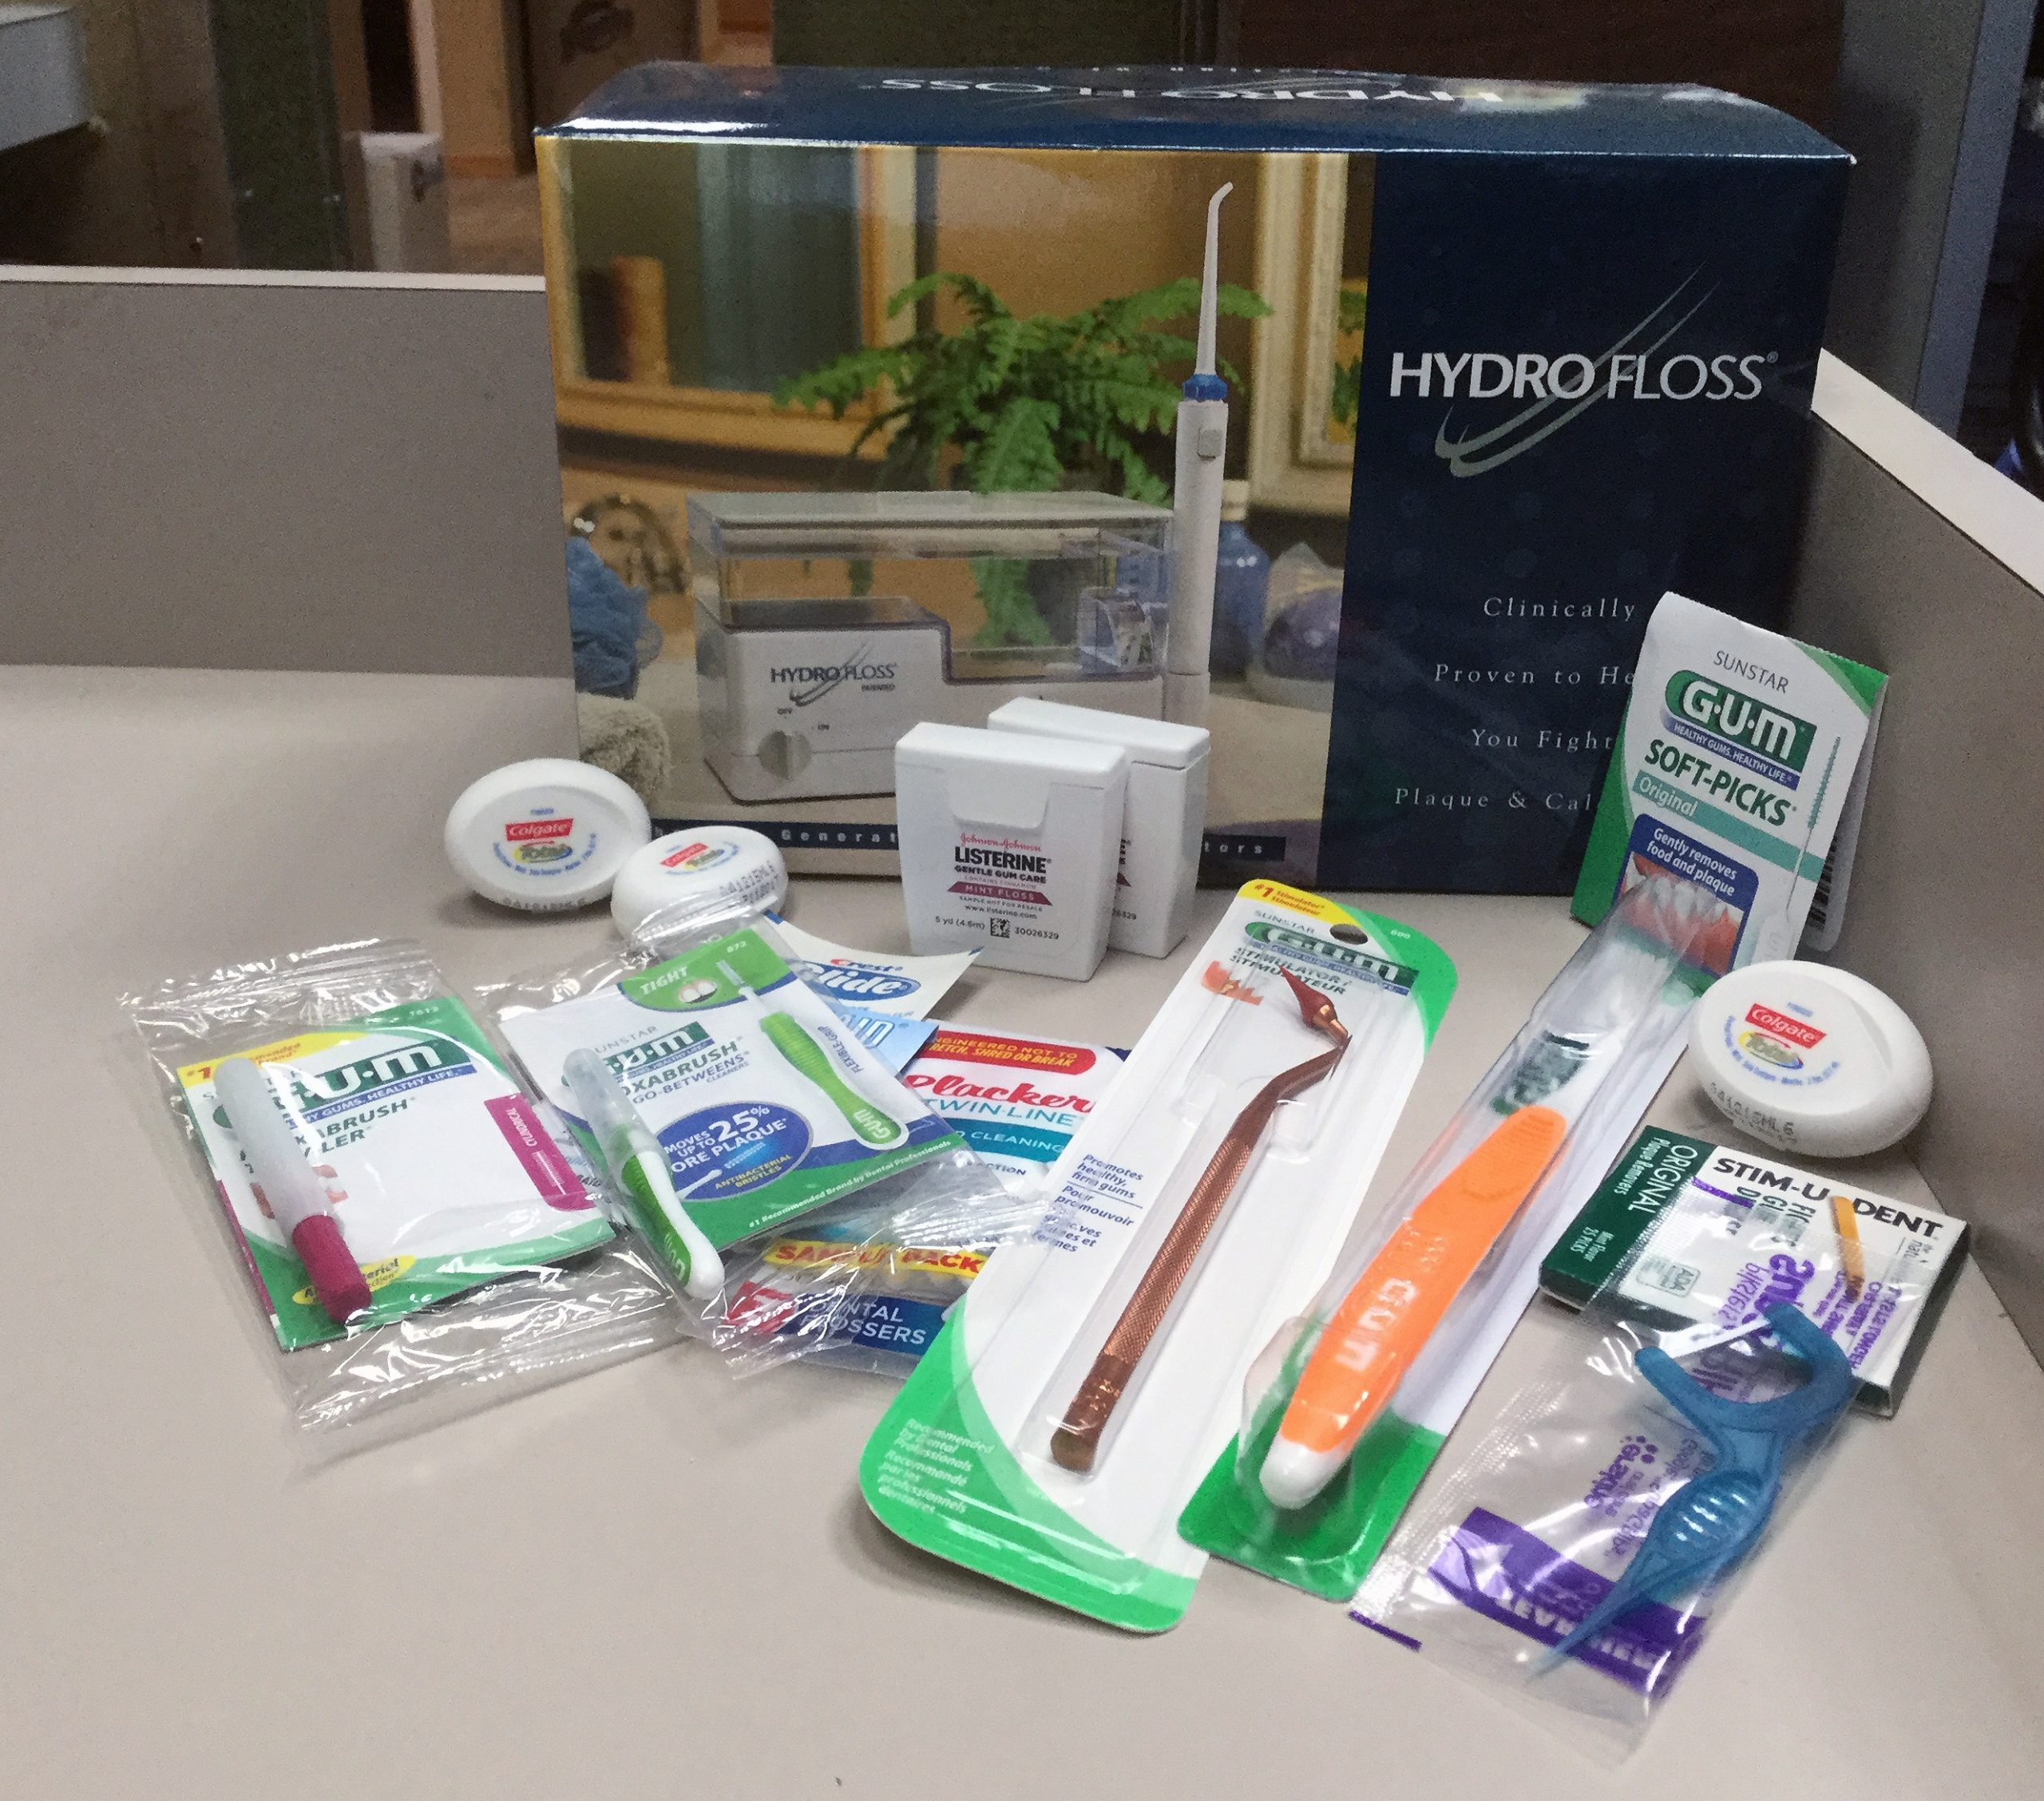 Daily oral hygiene home care can include dental floss, oral irrigators, proxabrushes